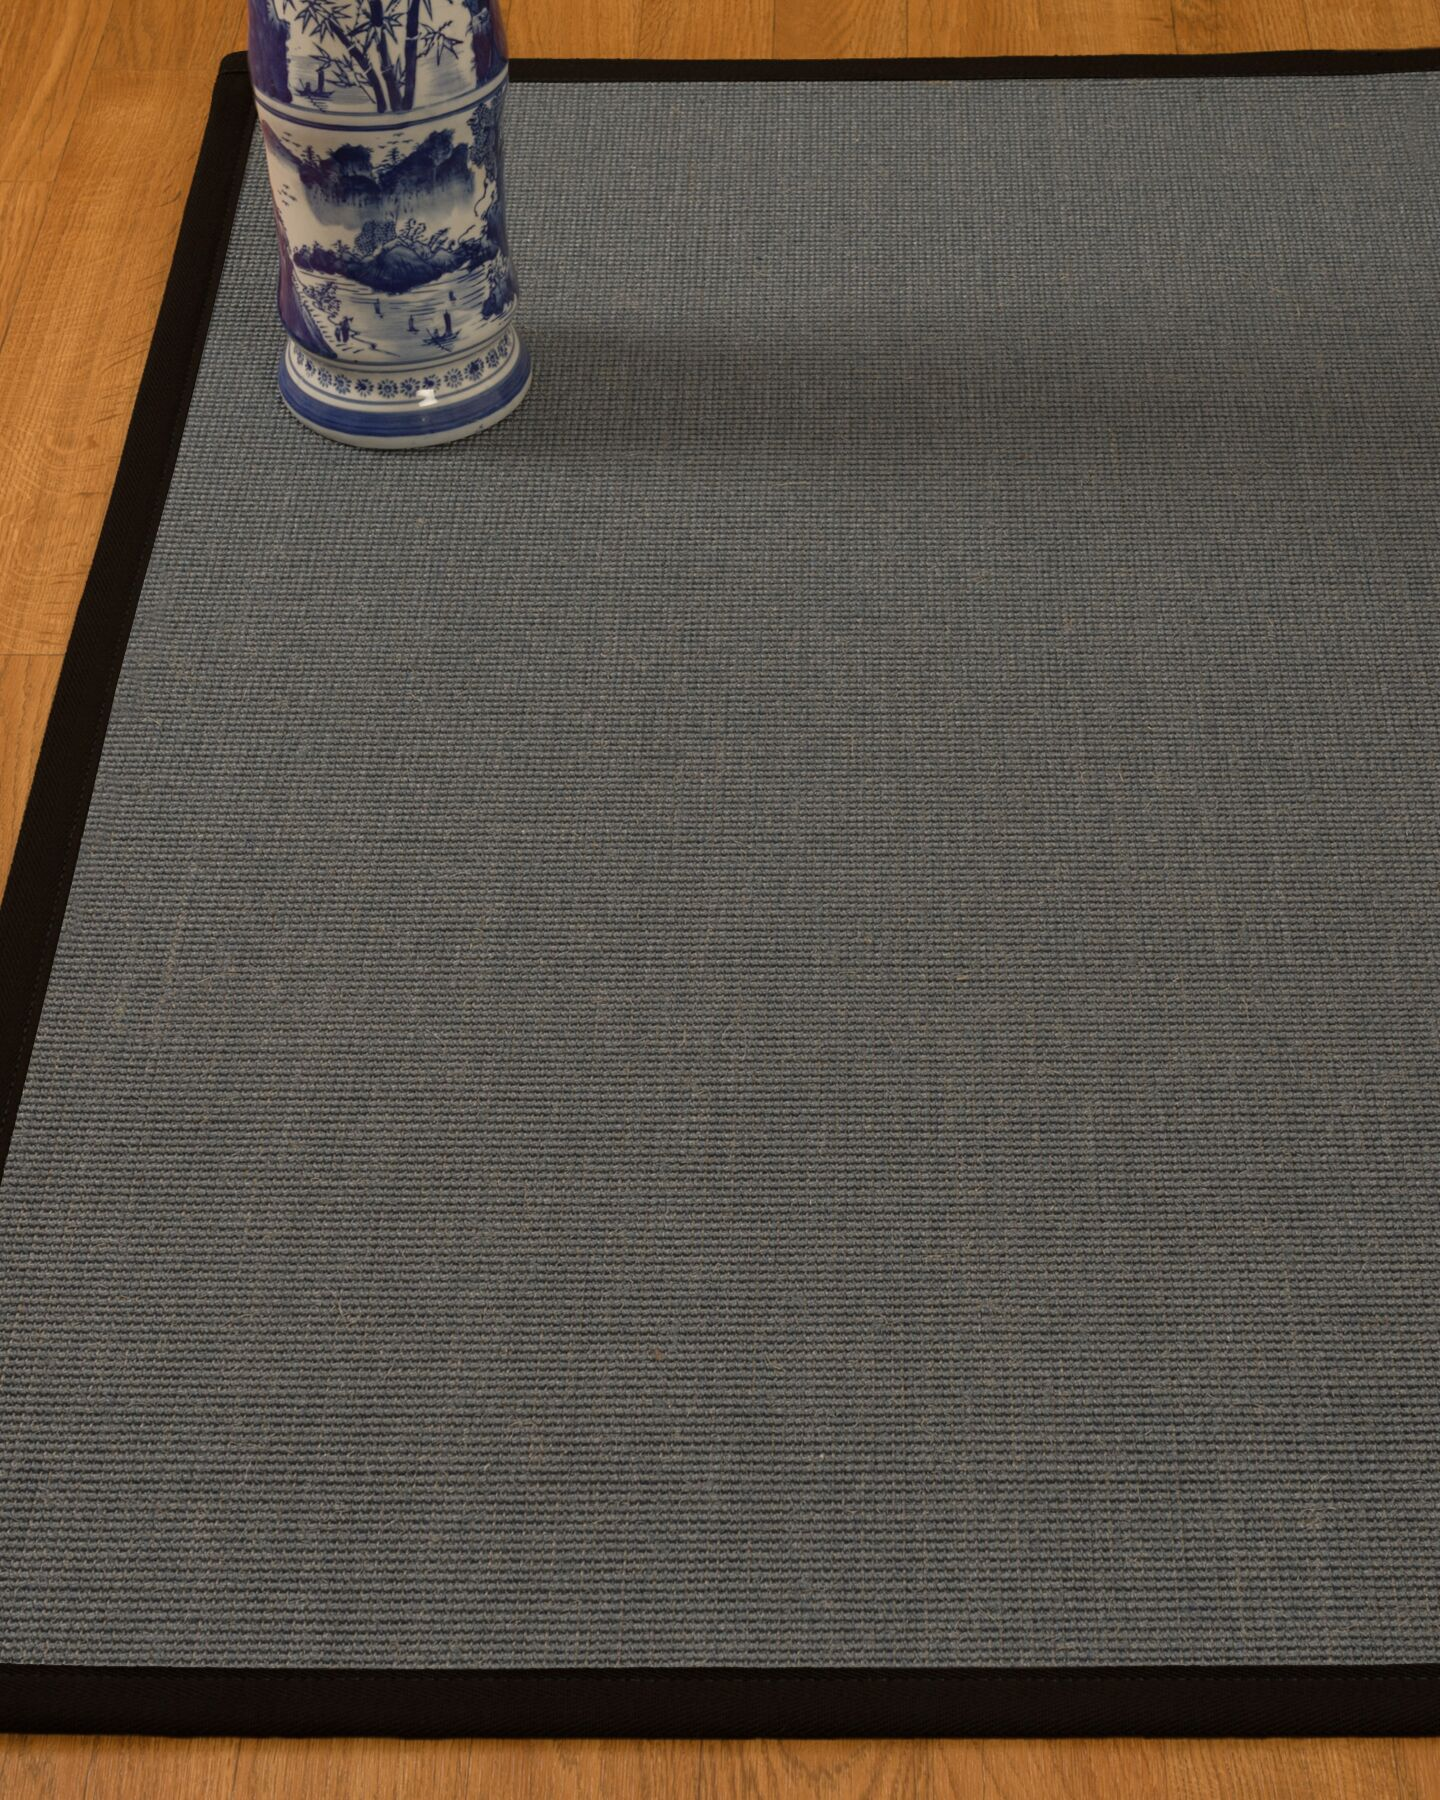 Ivy Handwoven Gray Area Rug Rug Size: Rectangle 4' x 6'